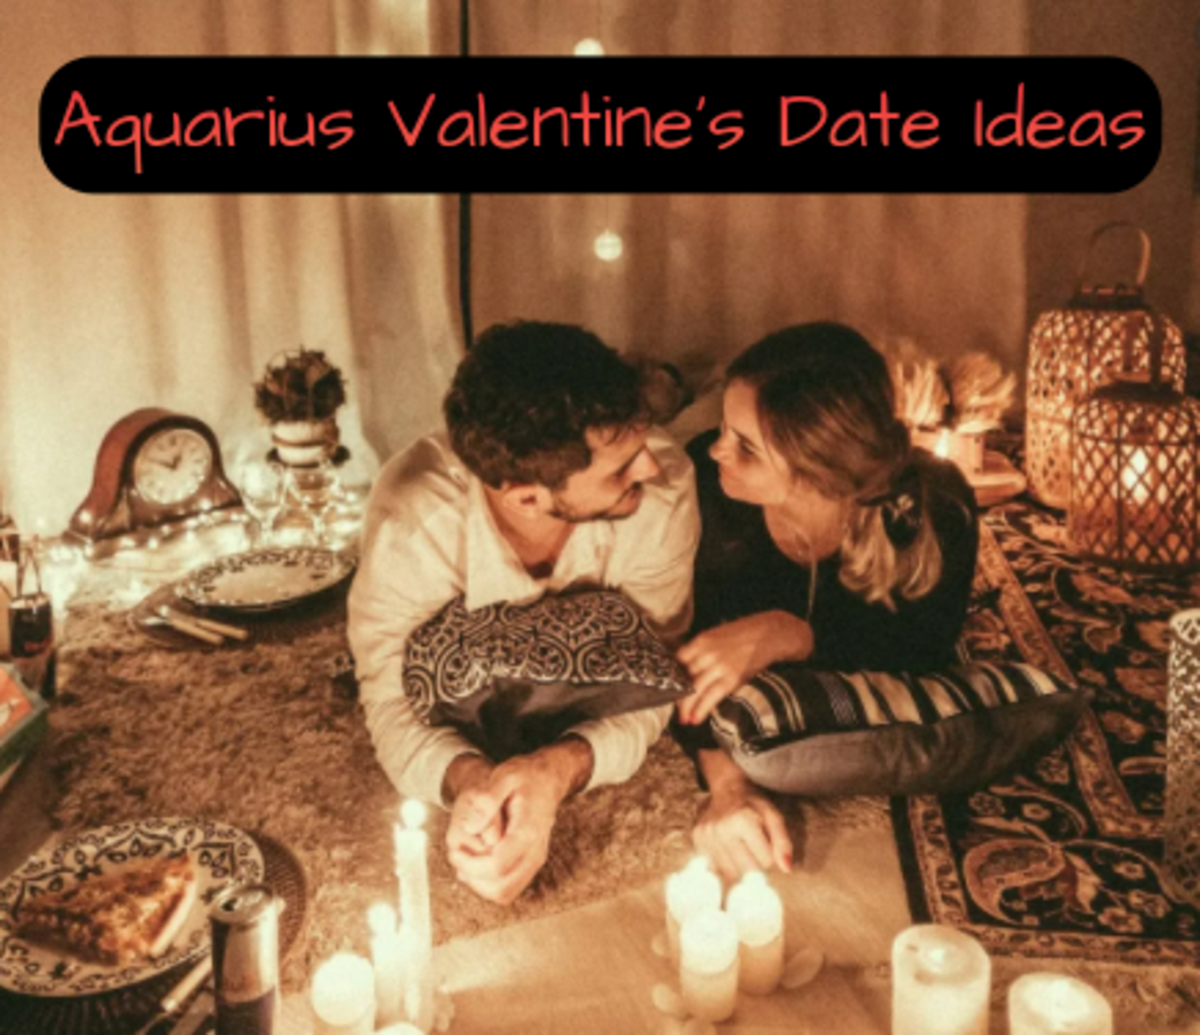 Aquarius wants an otherworldly date. (1) Put white Christmas lights in the living room and eat on the floor. (2) Serenade with beautiful songs. (3) Buy gifts and use them as surprises for the night. (4) Go to an art museum. (5) Road trip.